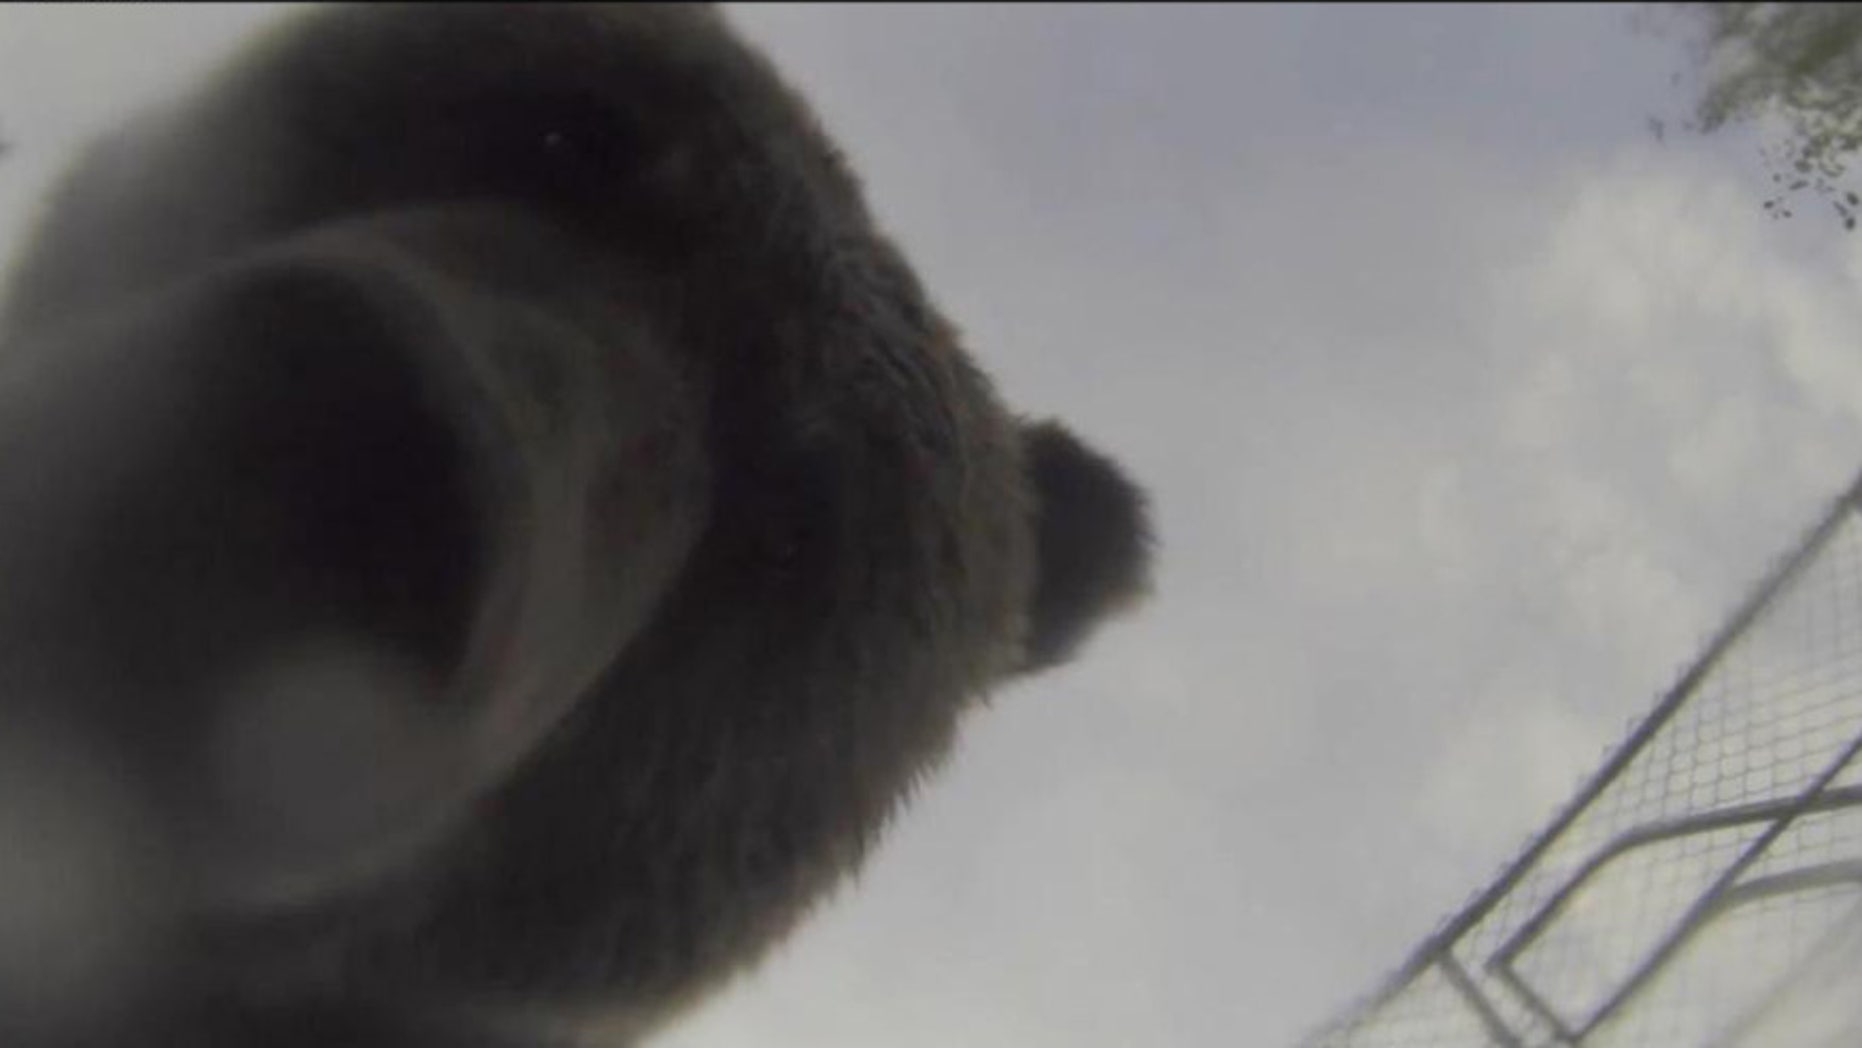 The grizzly bear that stole John Kitchin's GoPro.